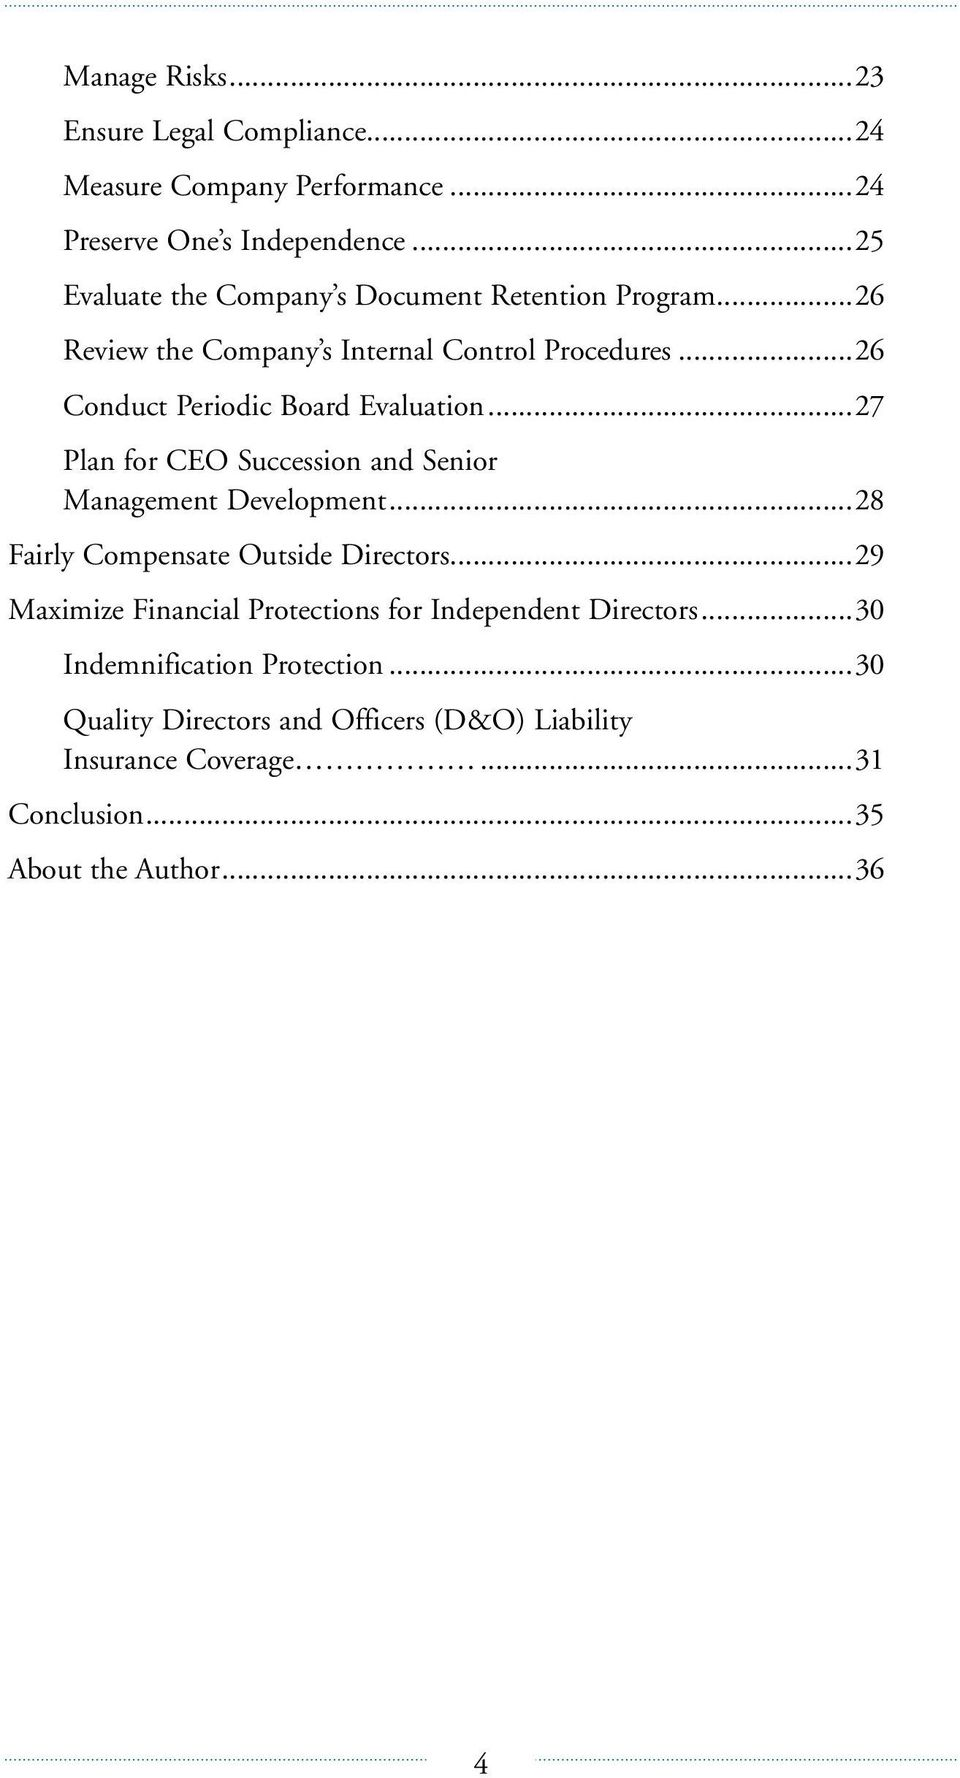 ..26 Conduct Periodic Board Evaluation...27 Plan for CEO Succession and Senior Management Development...28 Fairly Compensate Outside Directors.